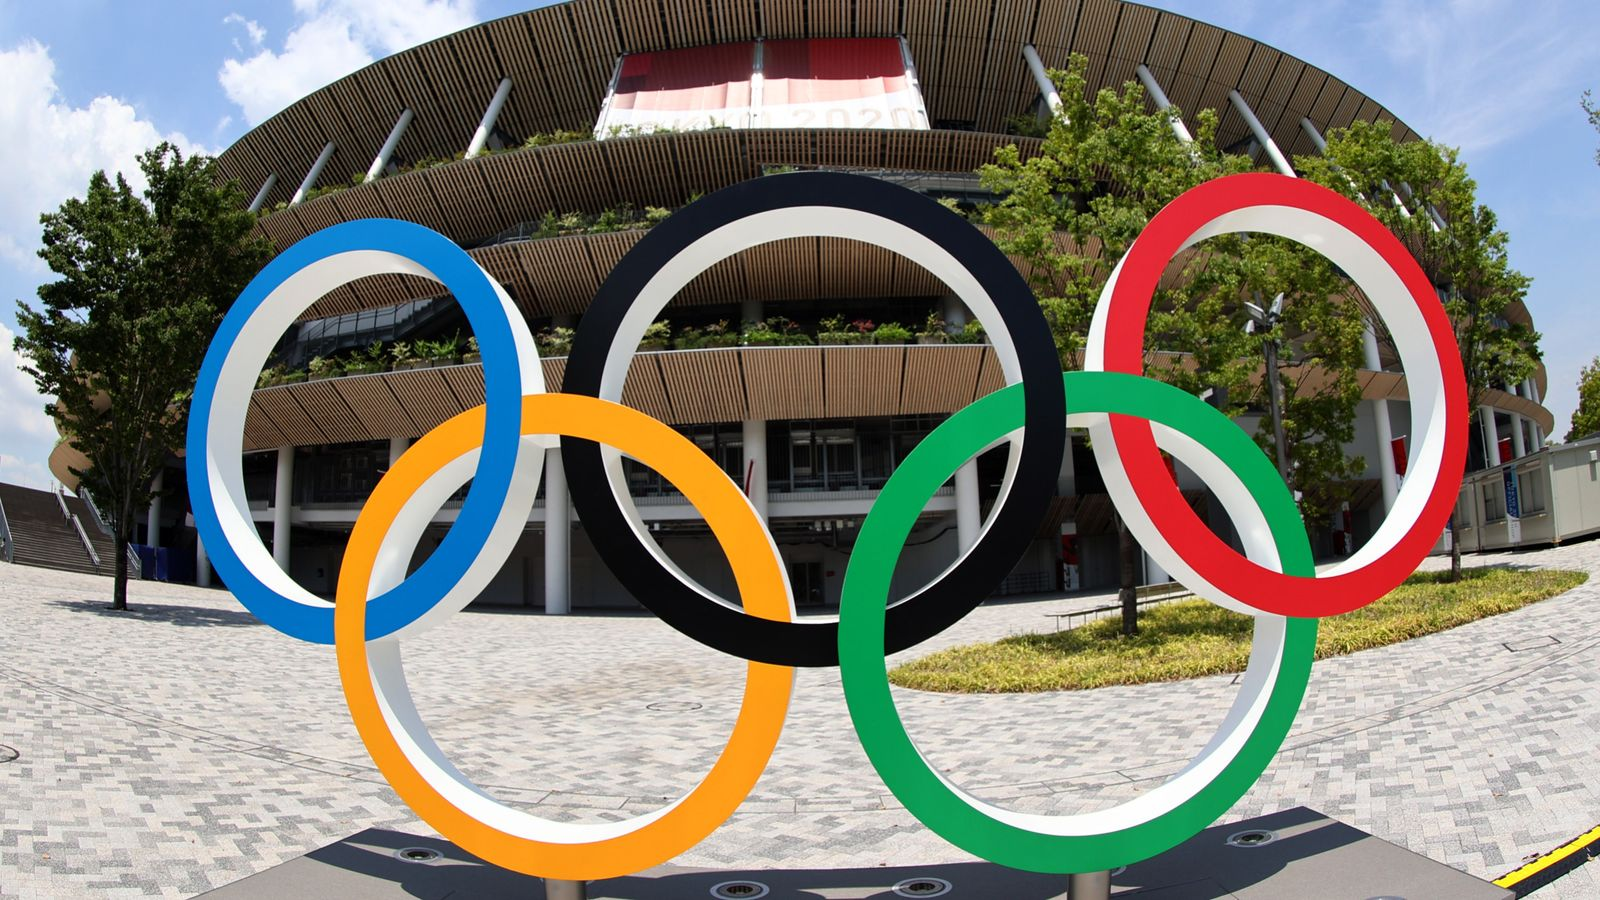 Tokyo Olympics: Japan prepares for Opening Ceremony as PM vows to 'fulfil our obligation to the world'